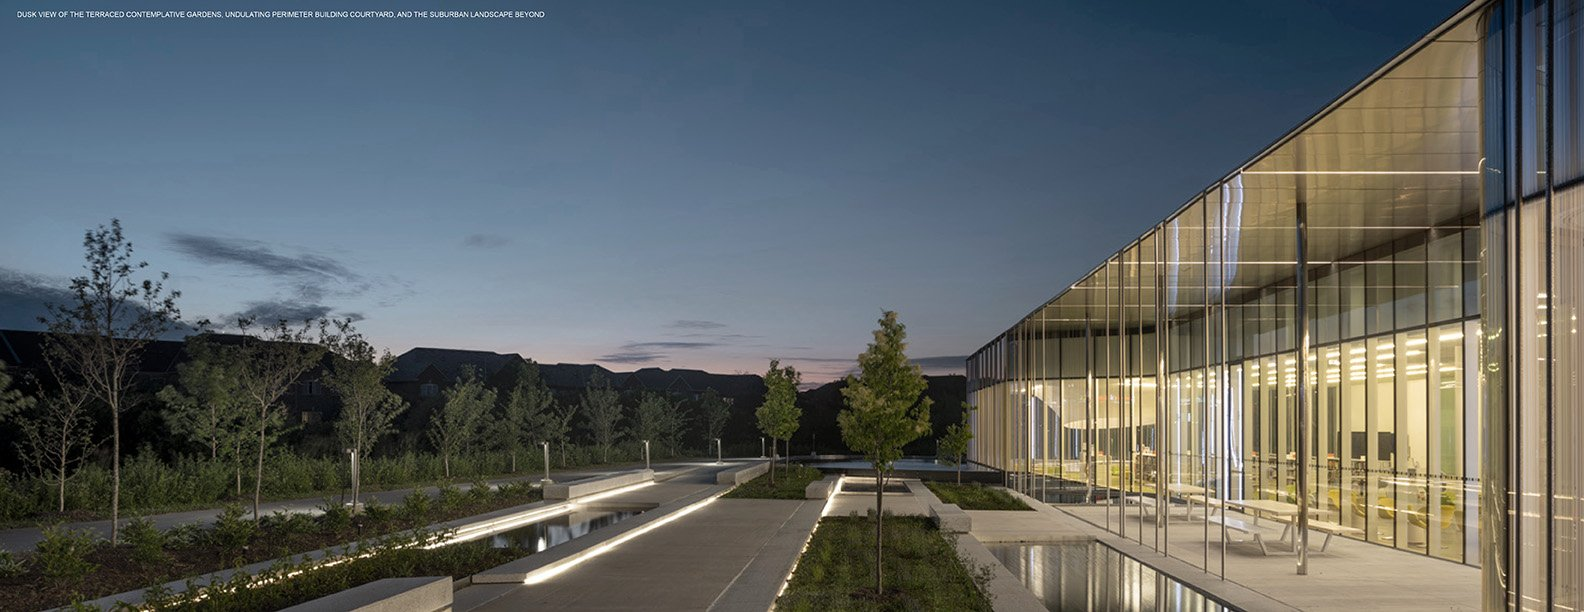 DUSK VIEW OF THE TERRACED CONTEMPLATIVE GARDENS, UNDULATING PERIMETER BUILDING COURTYARD, AND THE SUBURBAN LANDSCAPE BEYOND Nic Lehoux